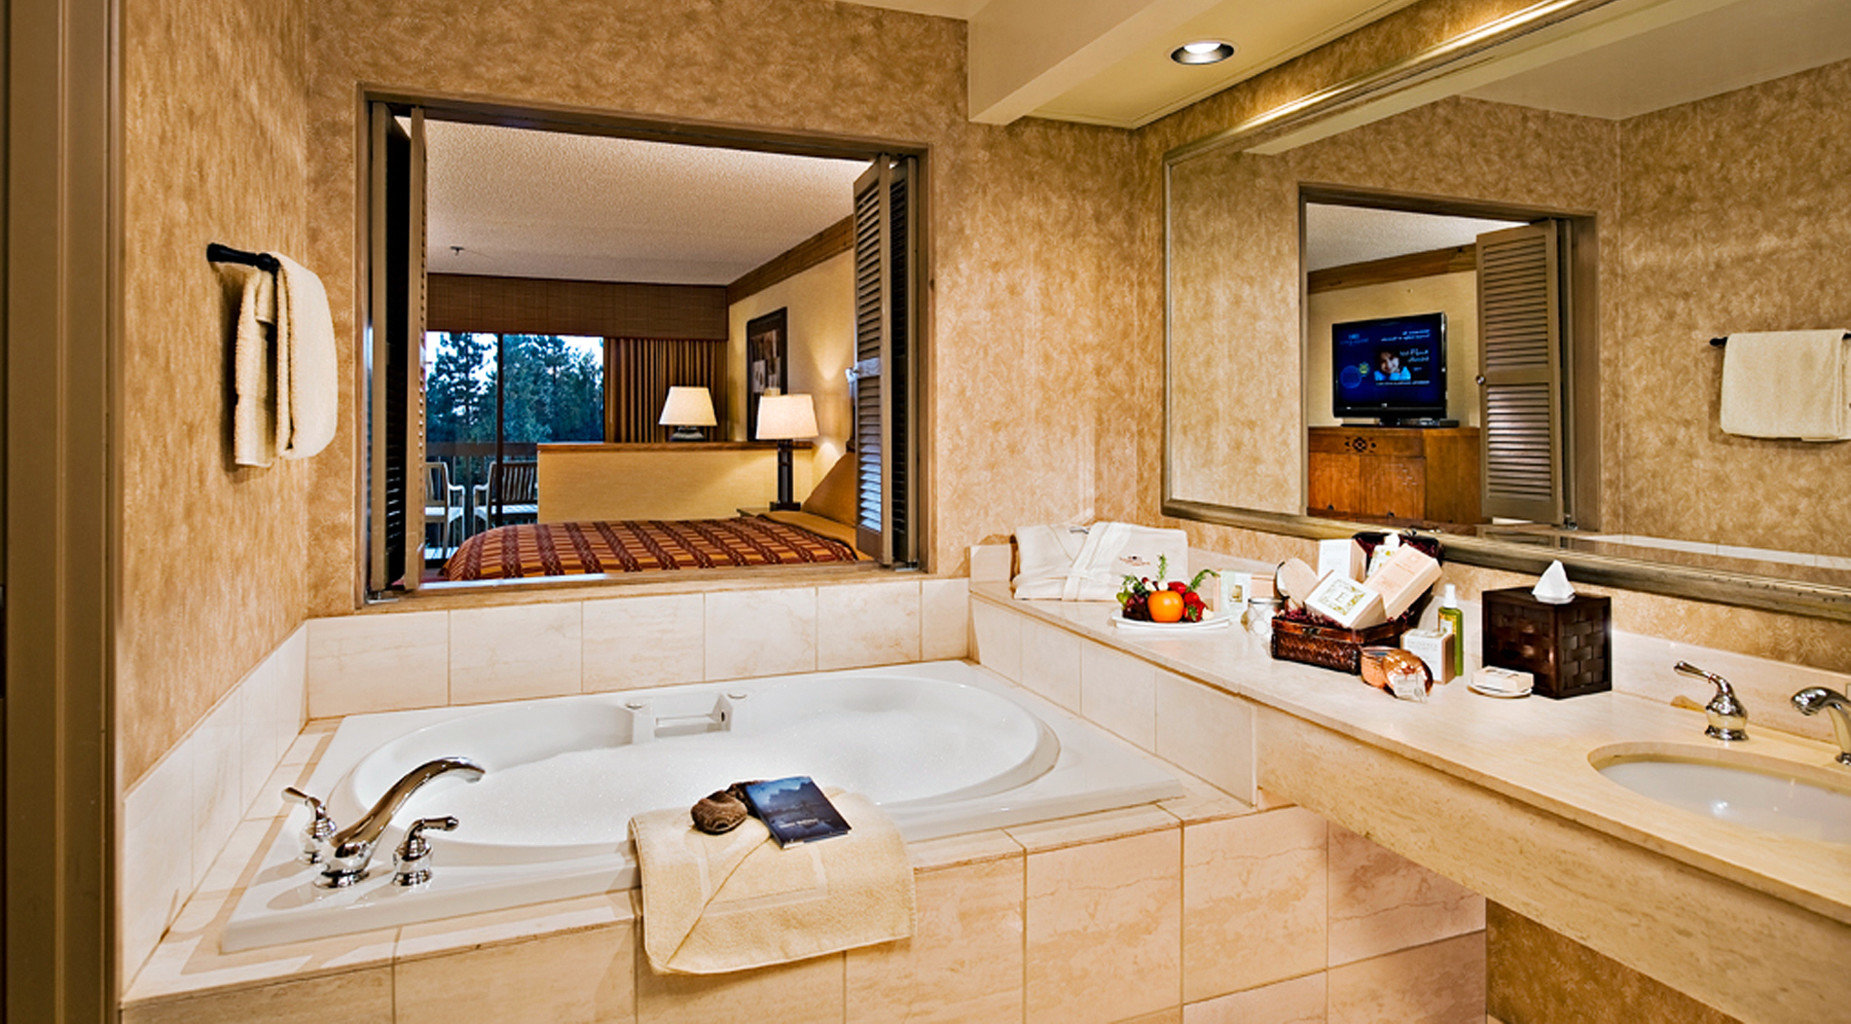 Bath Country Hot tub Hot tub/Jacuzzi Lodge bathroom property sink home Suite counter cottage living room swimming pool mansion